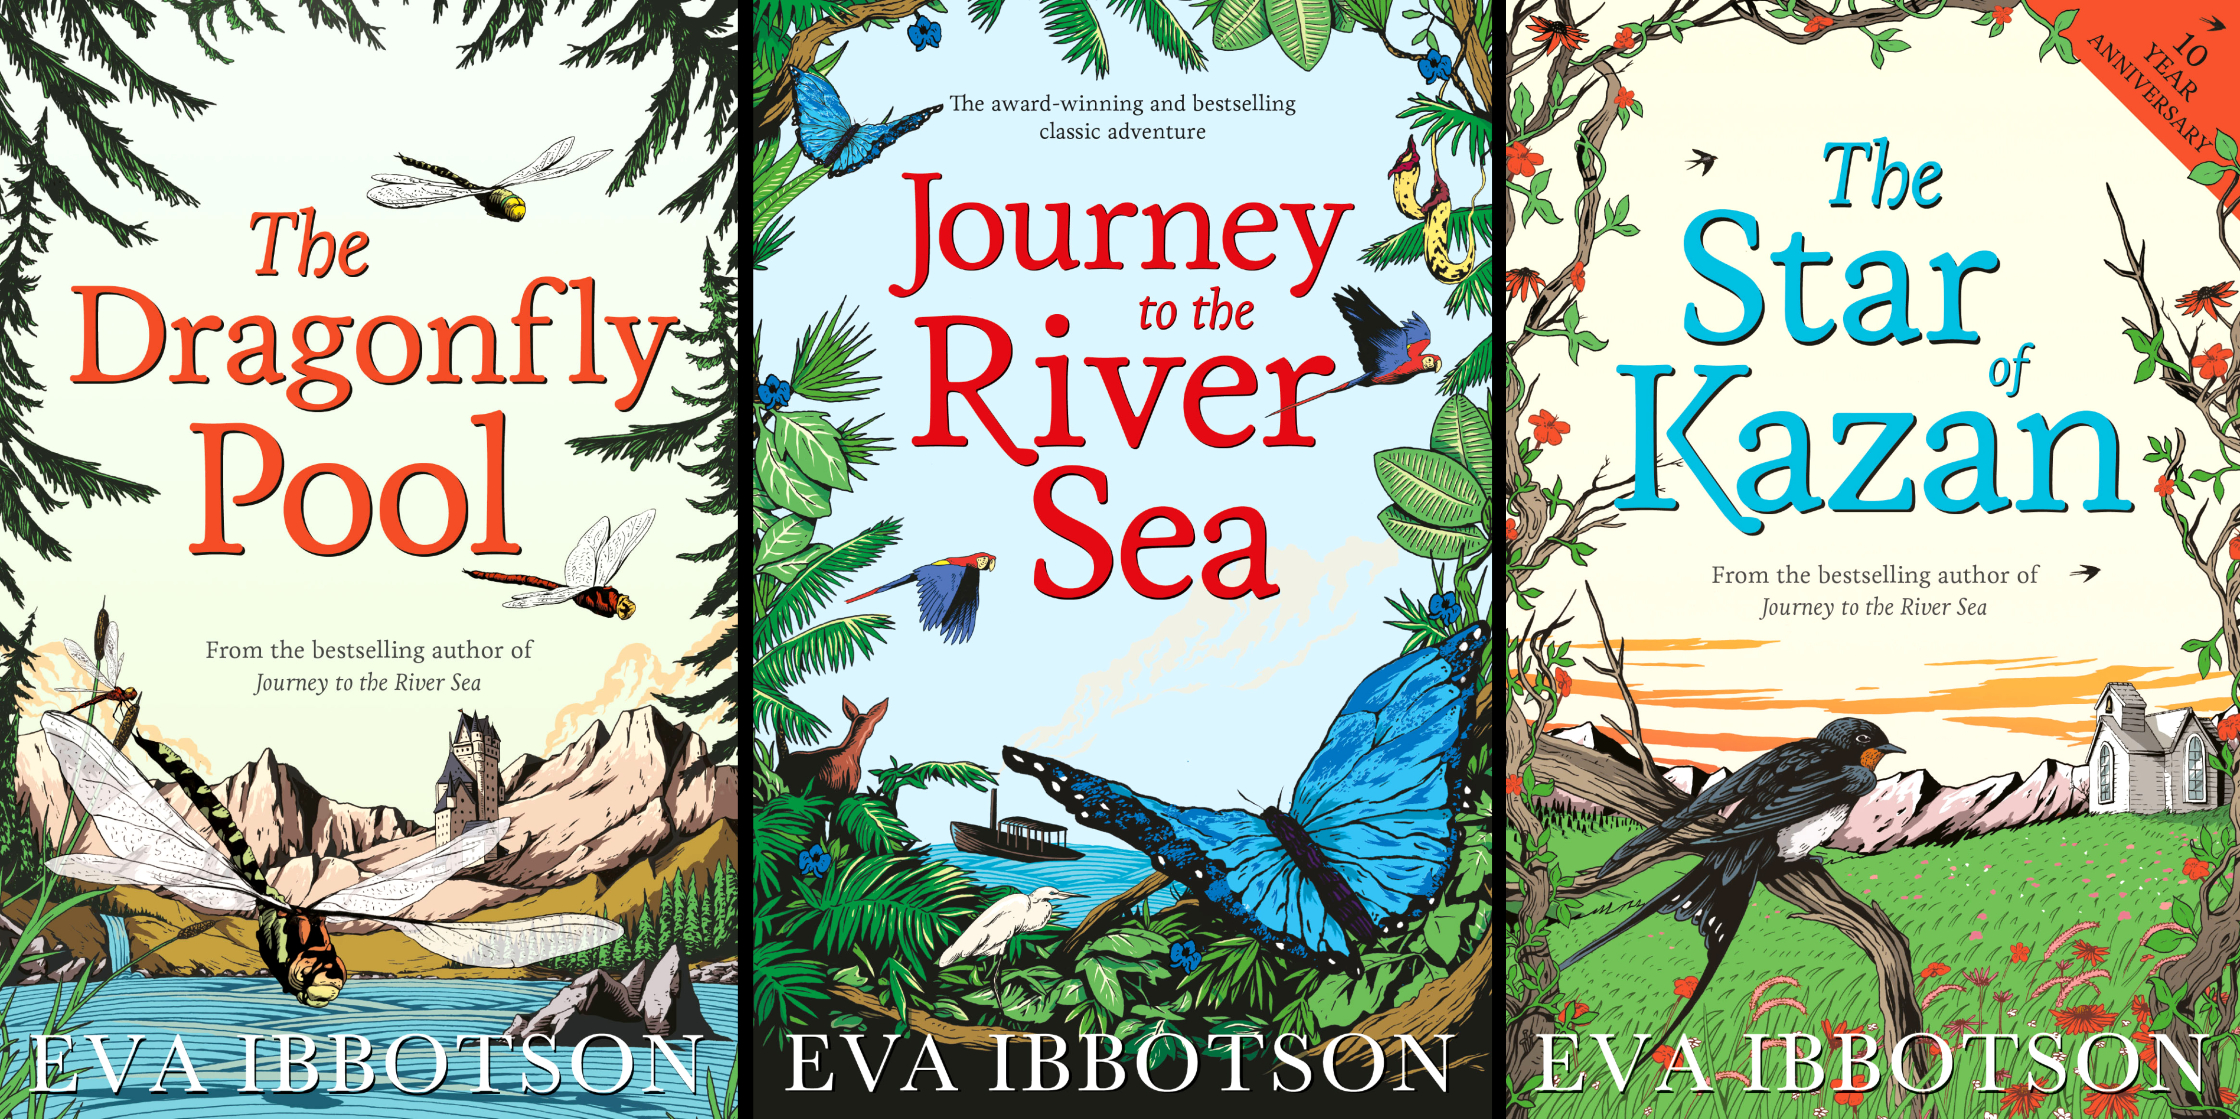 Eva Ibbotson Book Covers